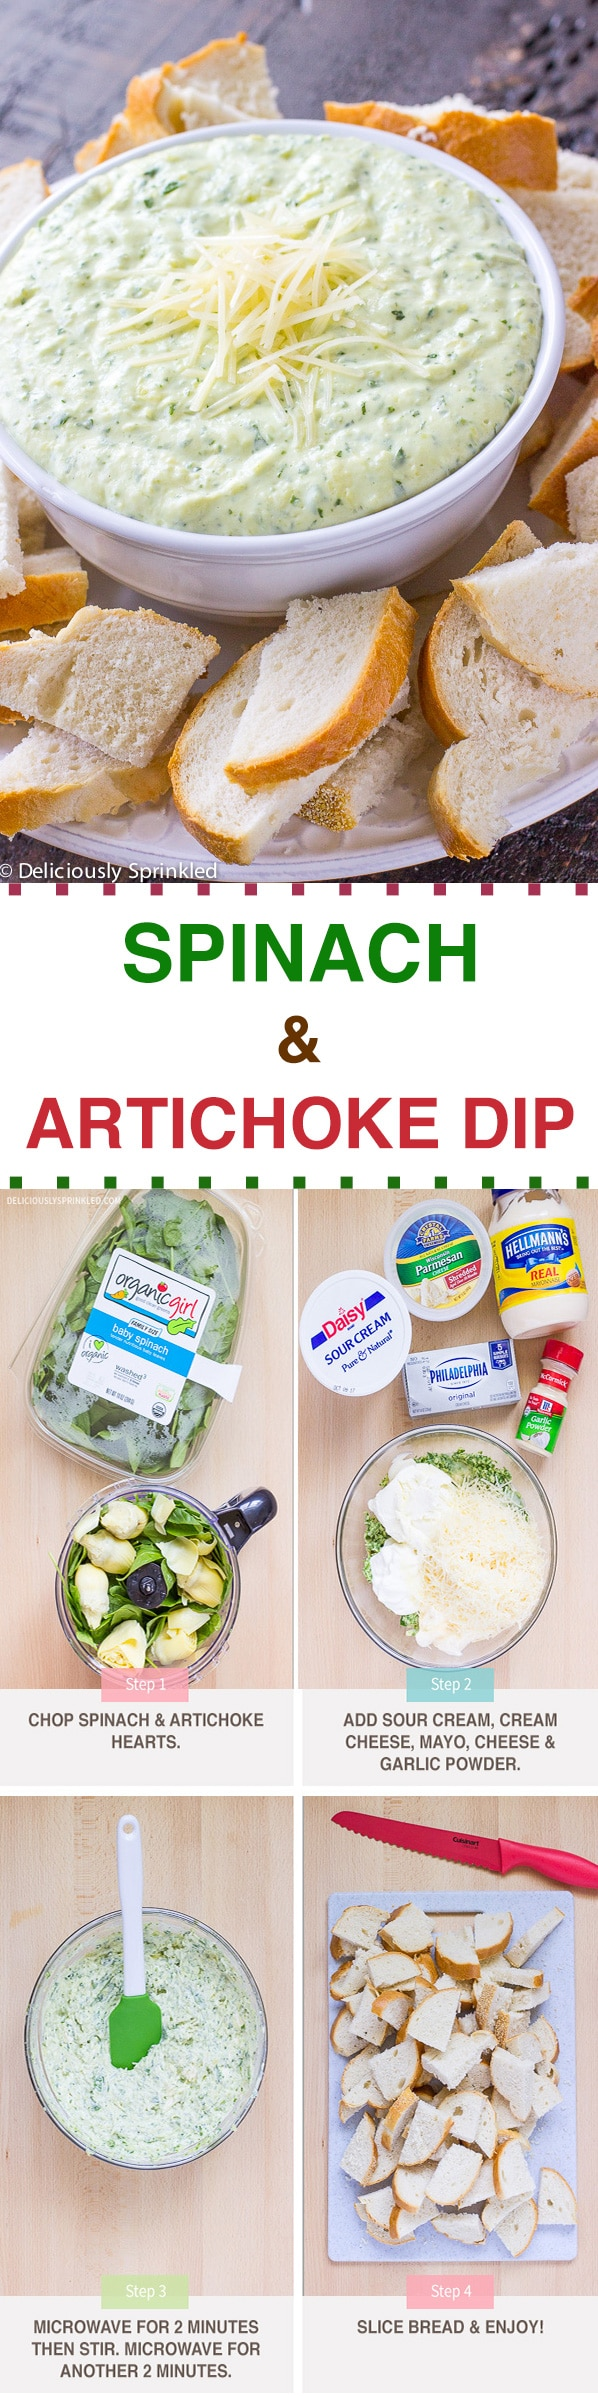 QUICK AND EASY SPINACH AND ARTICHOKE DIP RECIPE